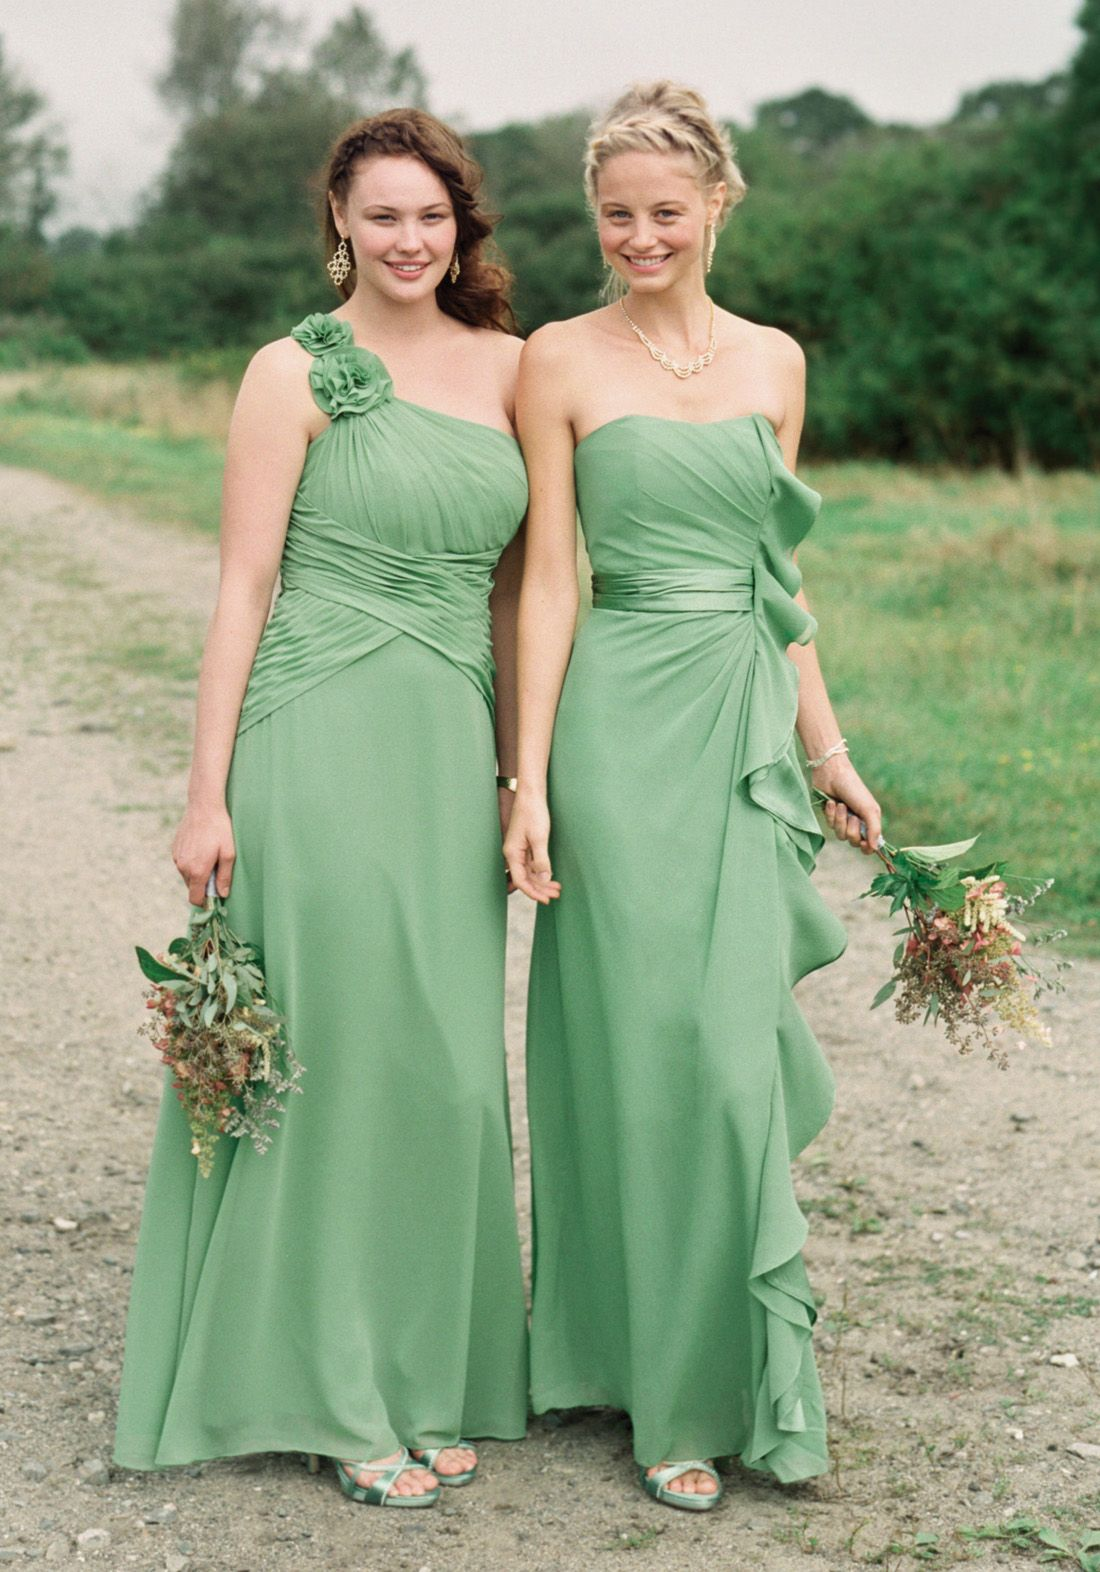 Check out styles f14010 and f14336 in clover as well as all of finding plus size bridesmaid dresses that flatter ombrellifo Image collections